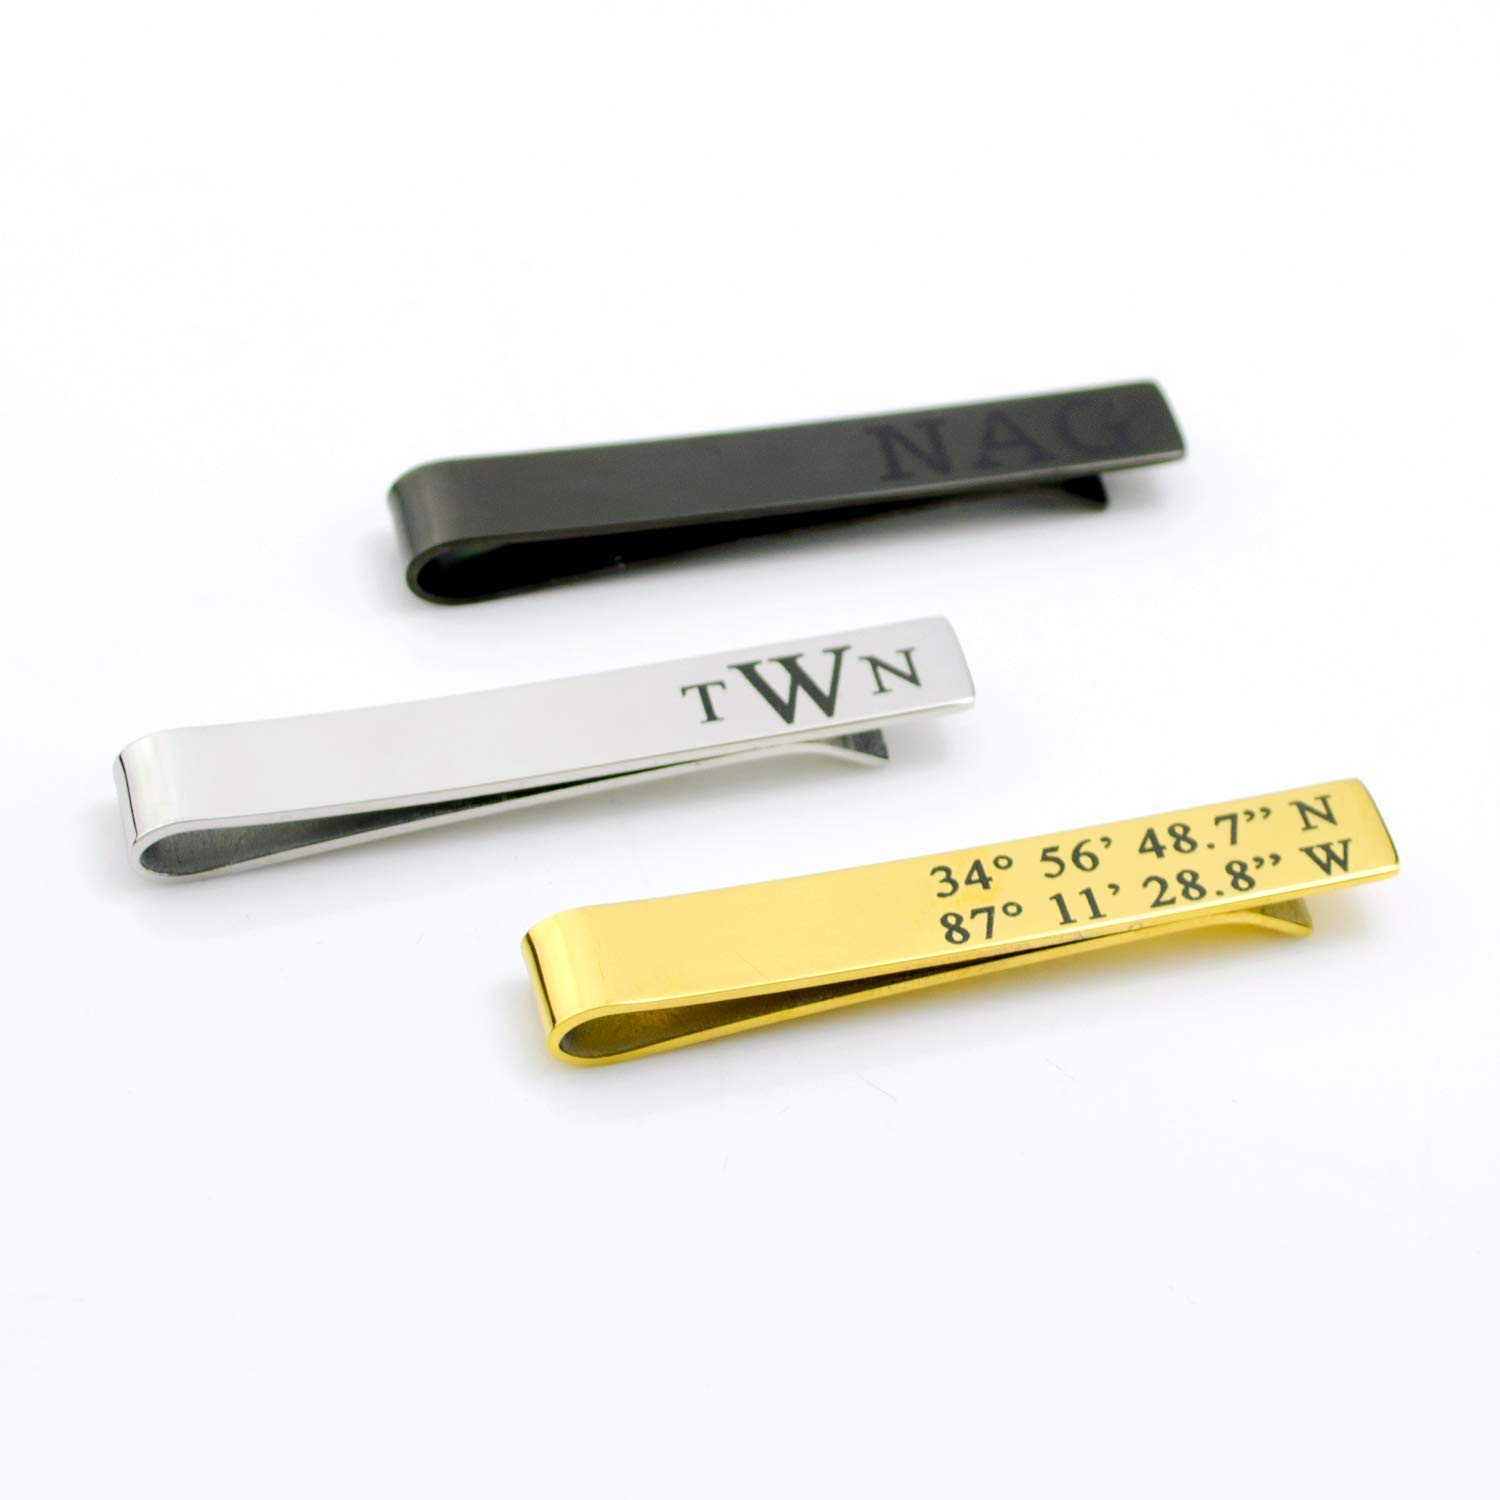 You are a big fan of your best gentleman dad. You love gazing at him in his suit. How about giving your best dad a Special Message Tie Bar on this Father'Day? It'll be the best present for daddy. Wear it on his tie and show him your huge admiration right now.